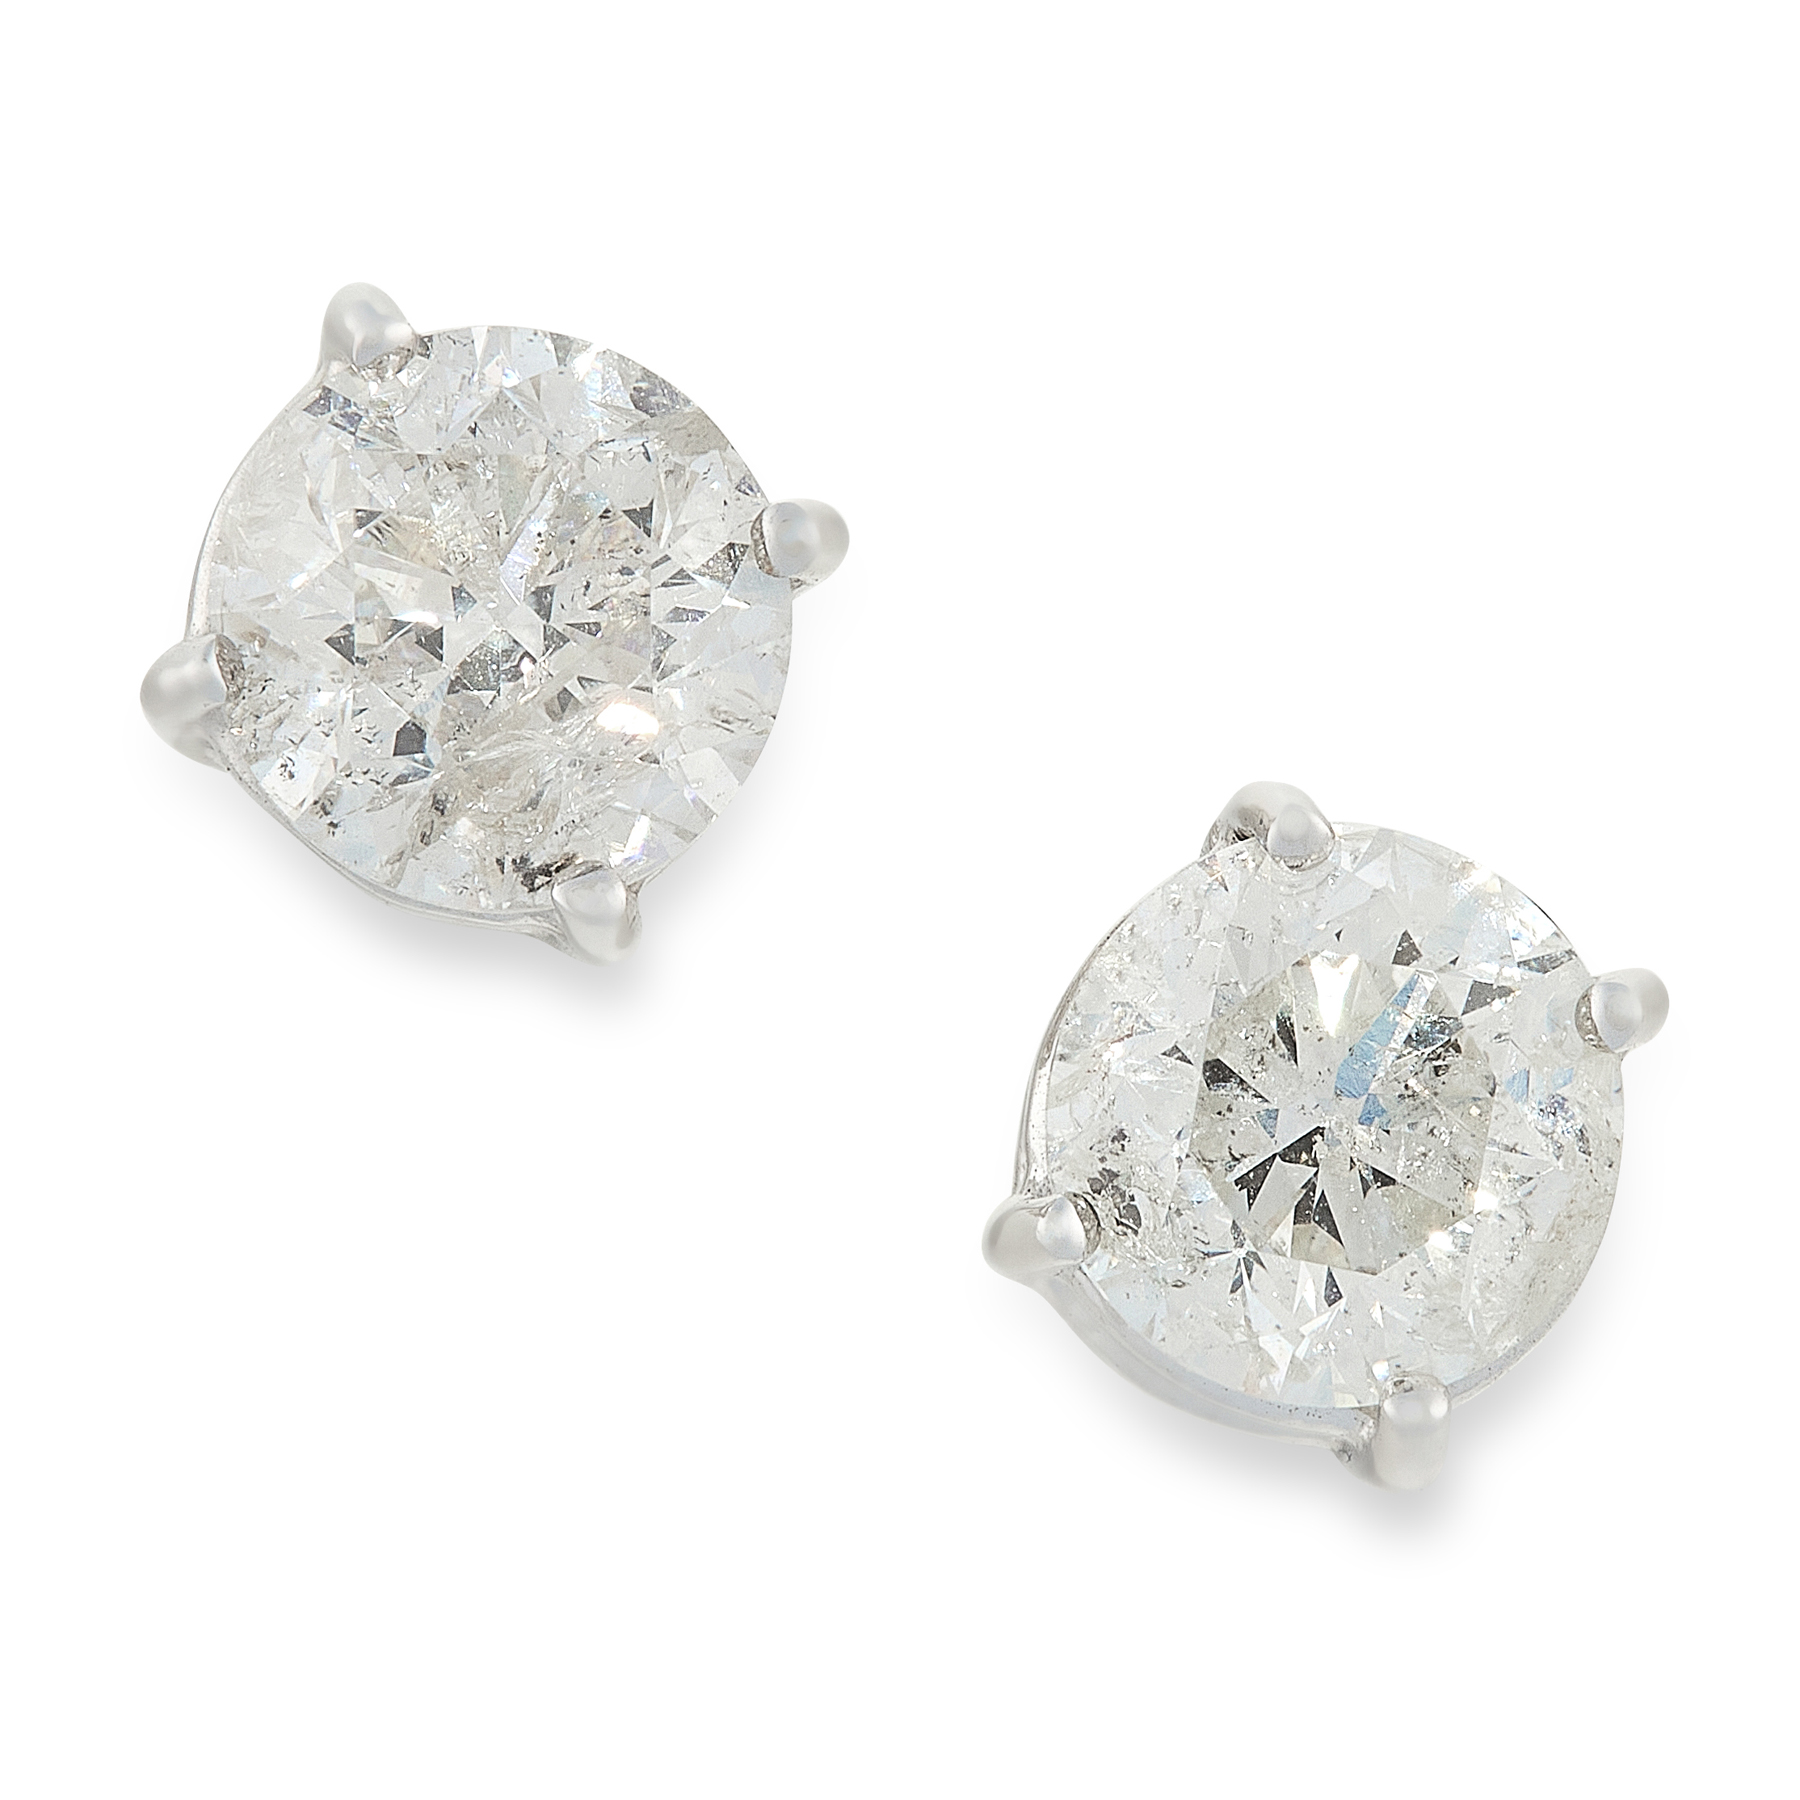 A PAIR OF DIAMOND STUD EARRINGS in 18ct white gold, each set with a round cut diamond, totalling 1.